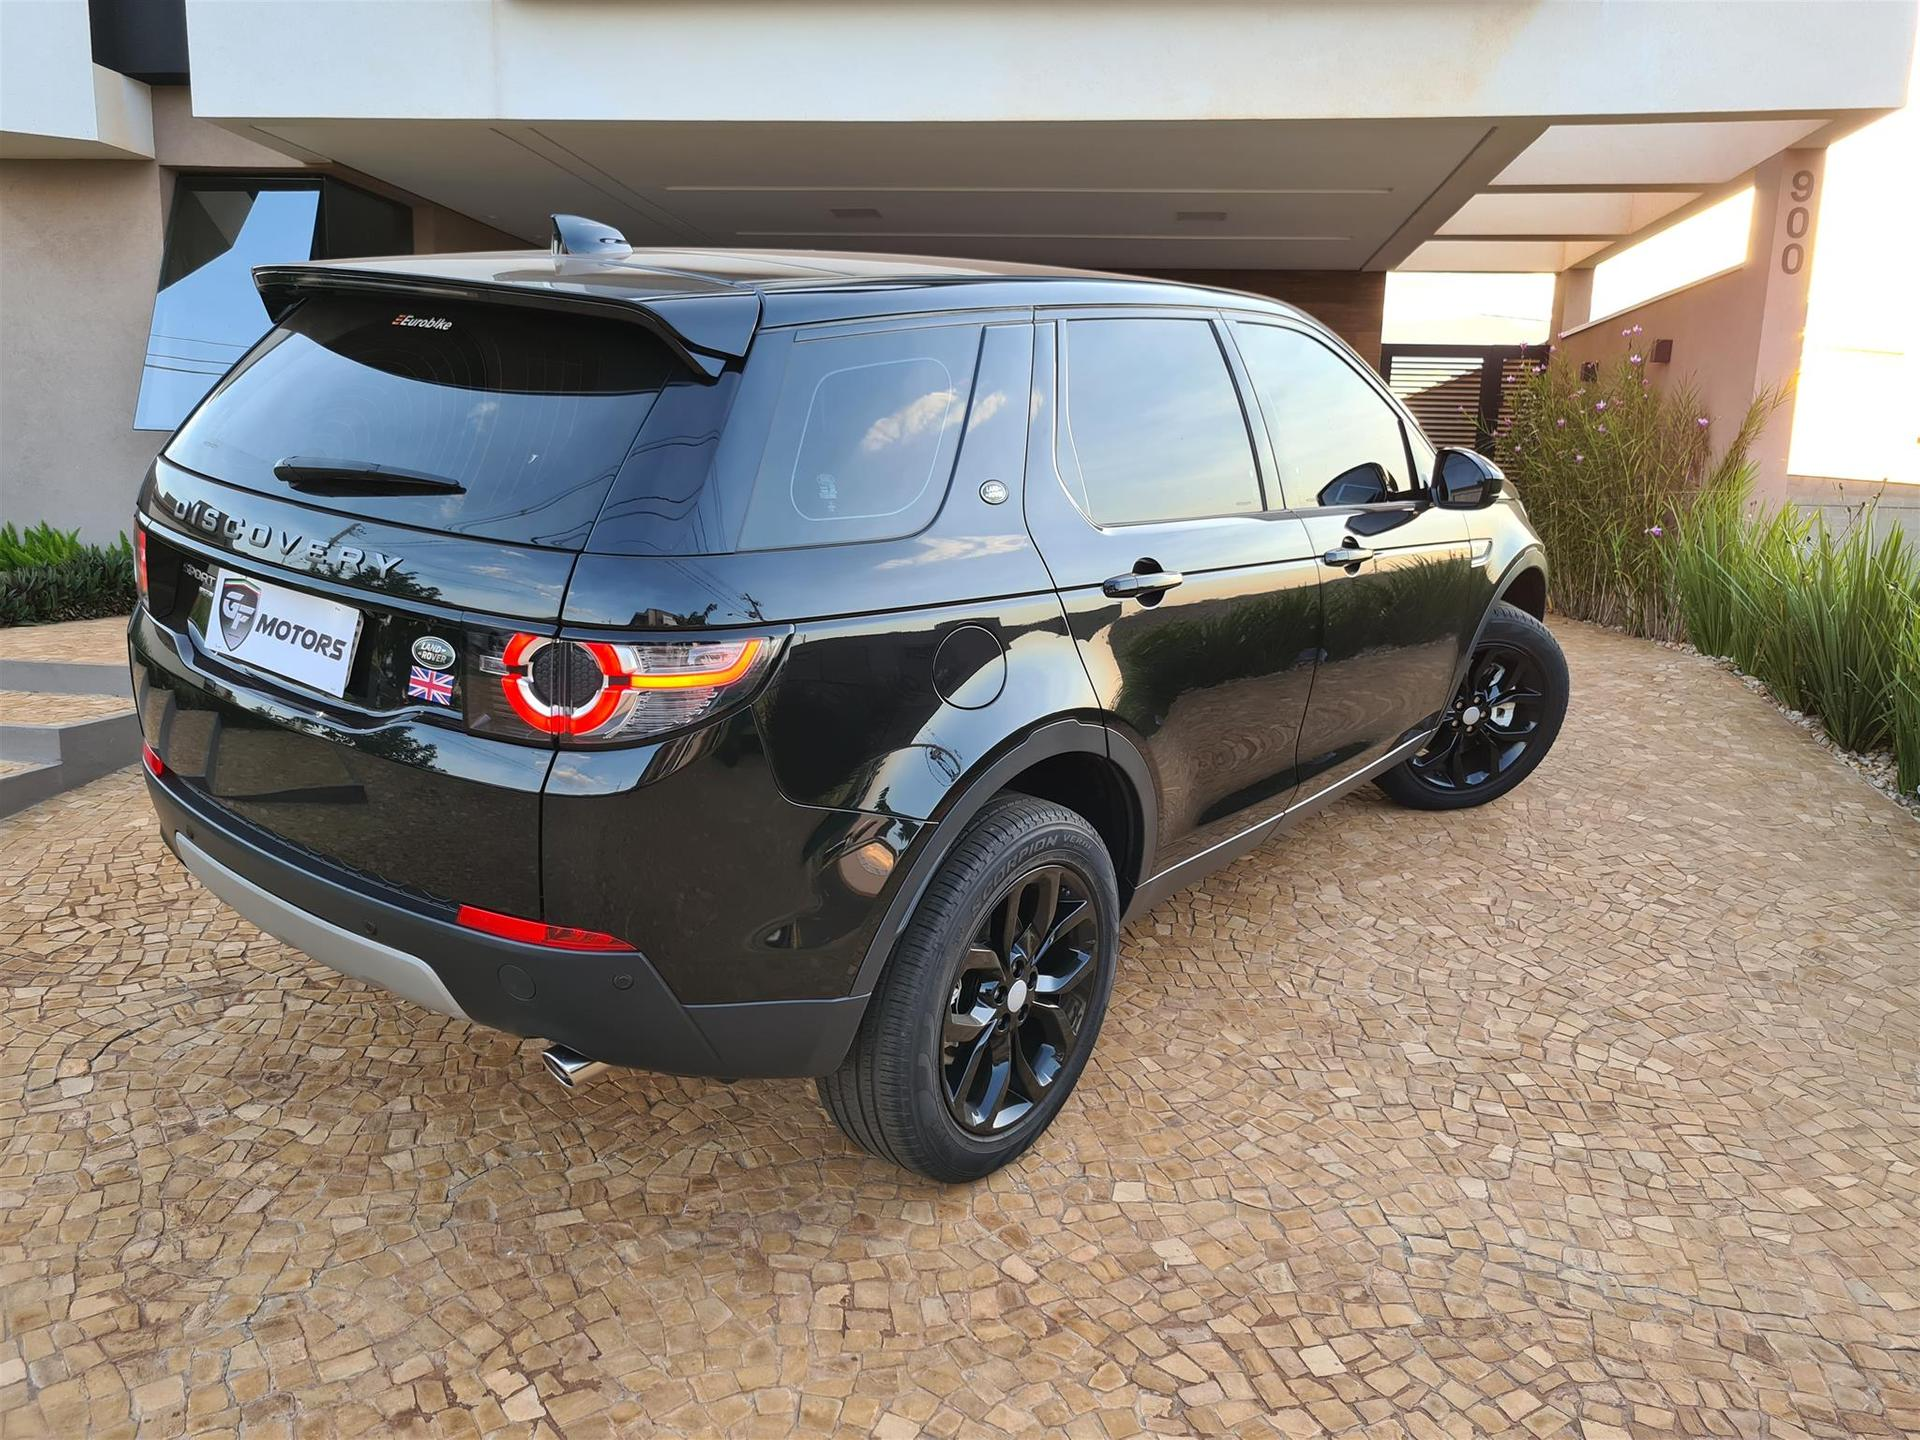 Land Rover Discovery Sport 2.0 16v Td4 Turbo Diesel Hse 4p Automatico Wmimagem08520465921